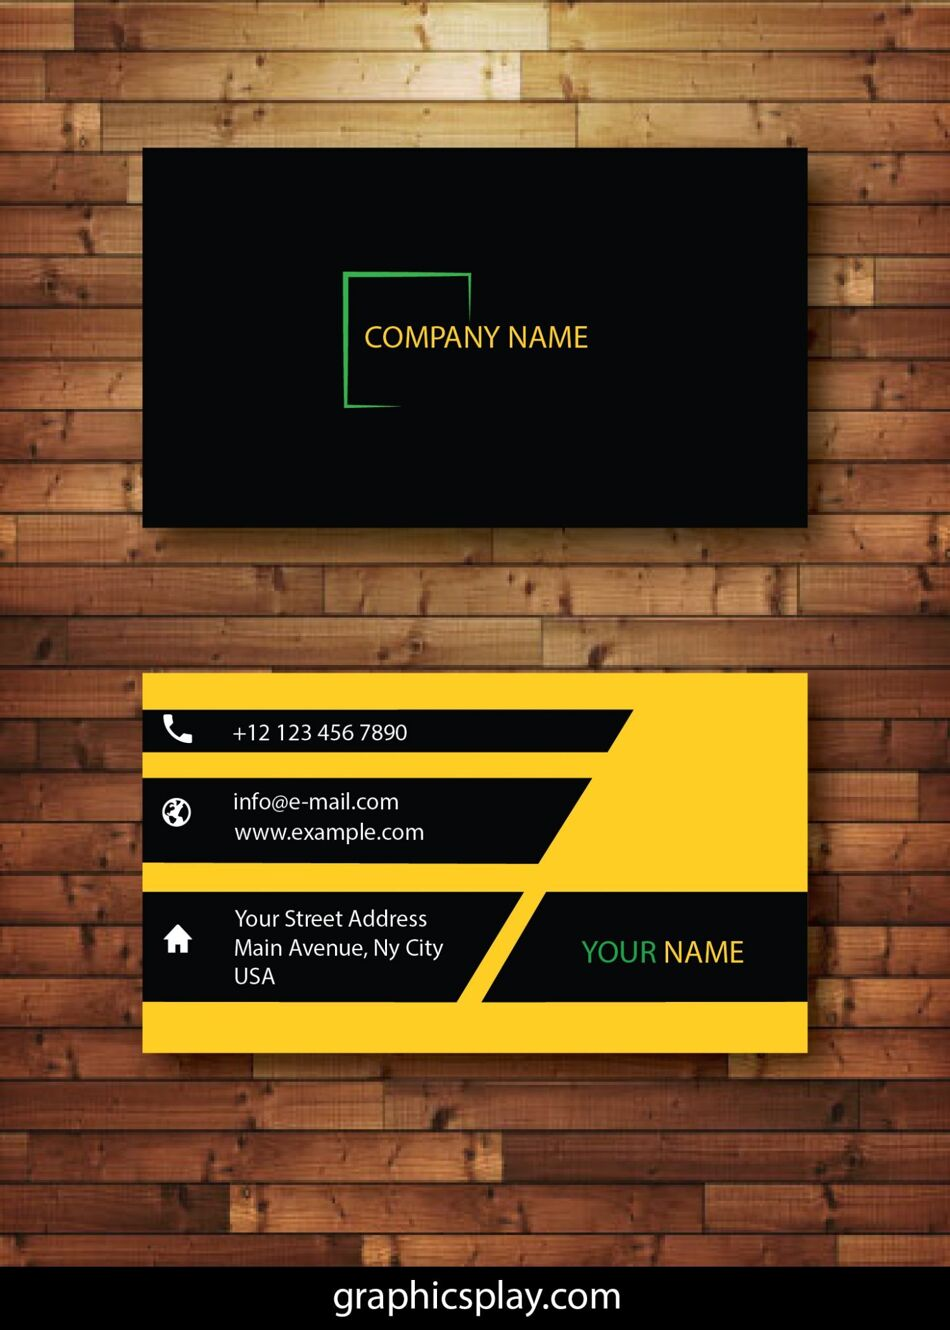 Business Card Design Vector Template - ID 4144 1